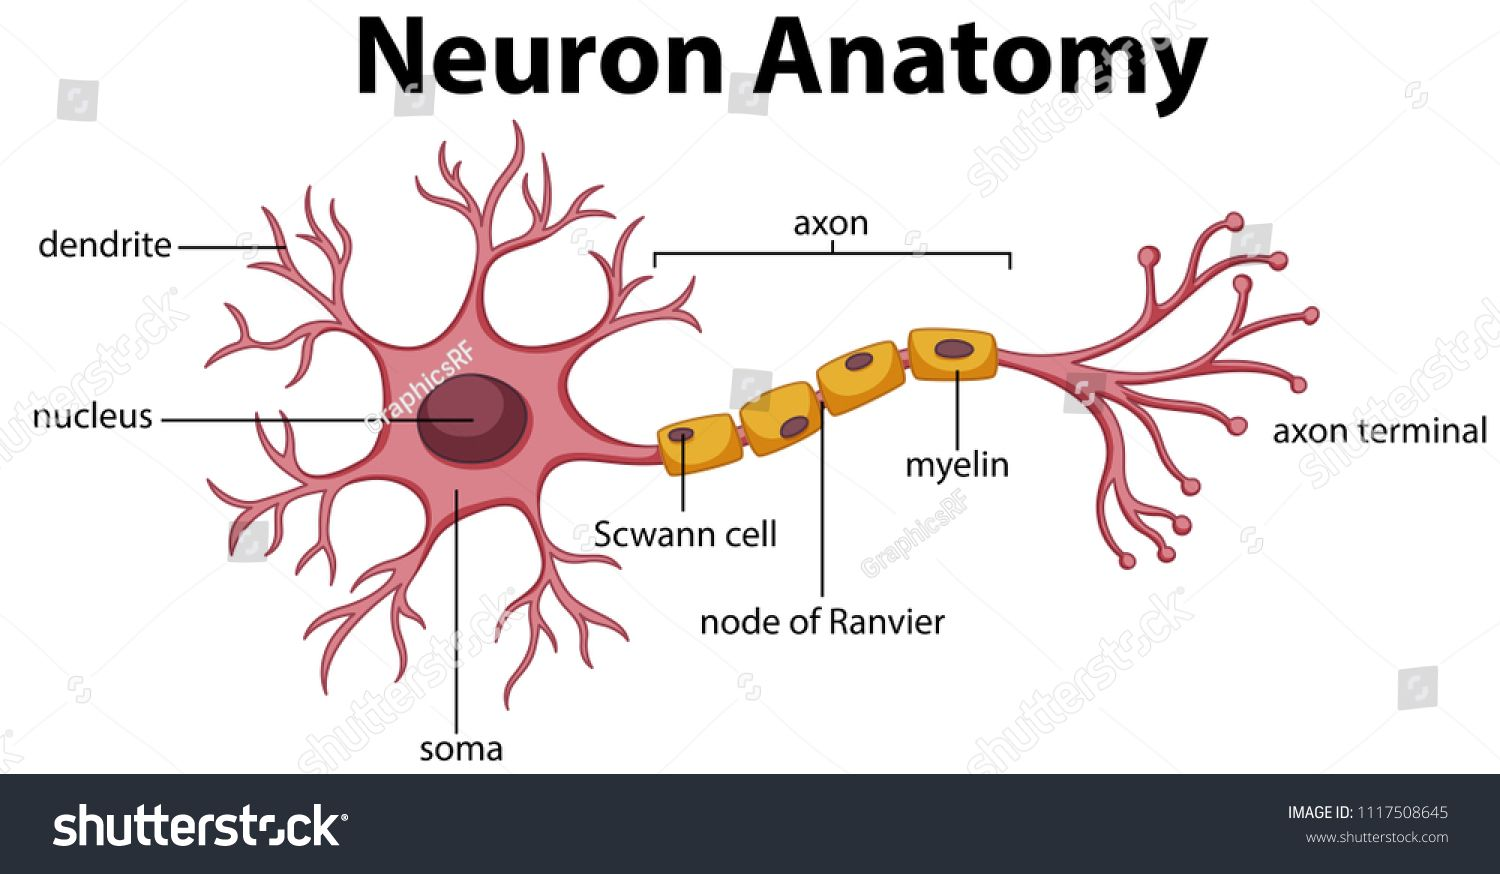 Diagram Of Neuron Anatomy Illustration Ad Ad Neuron Diagram Illustration Anatomy Neuron Diagram Neurons Nervous System Diagram